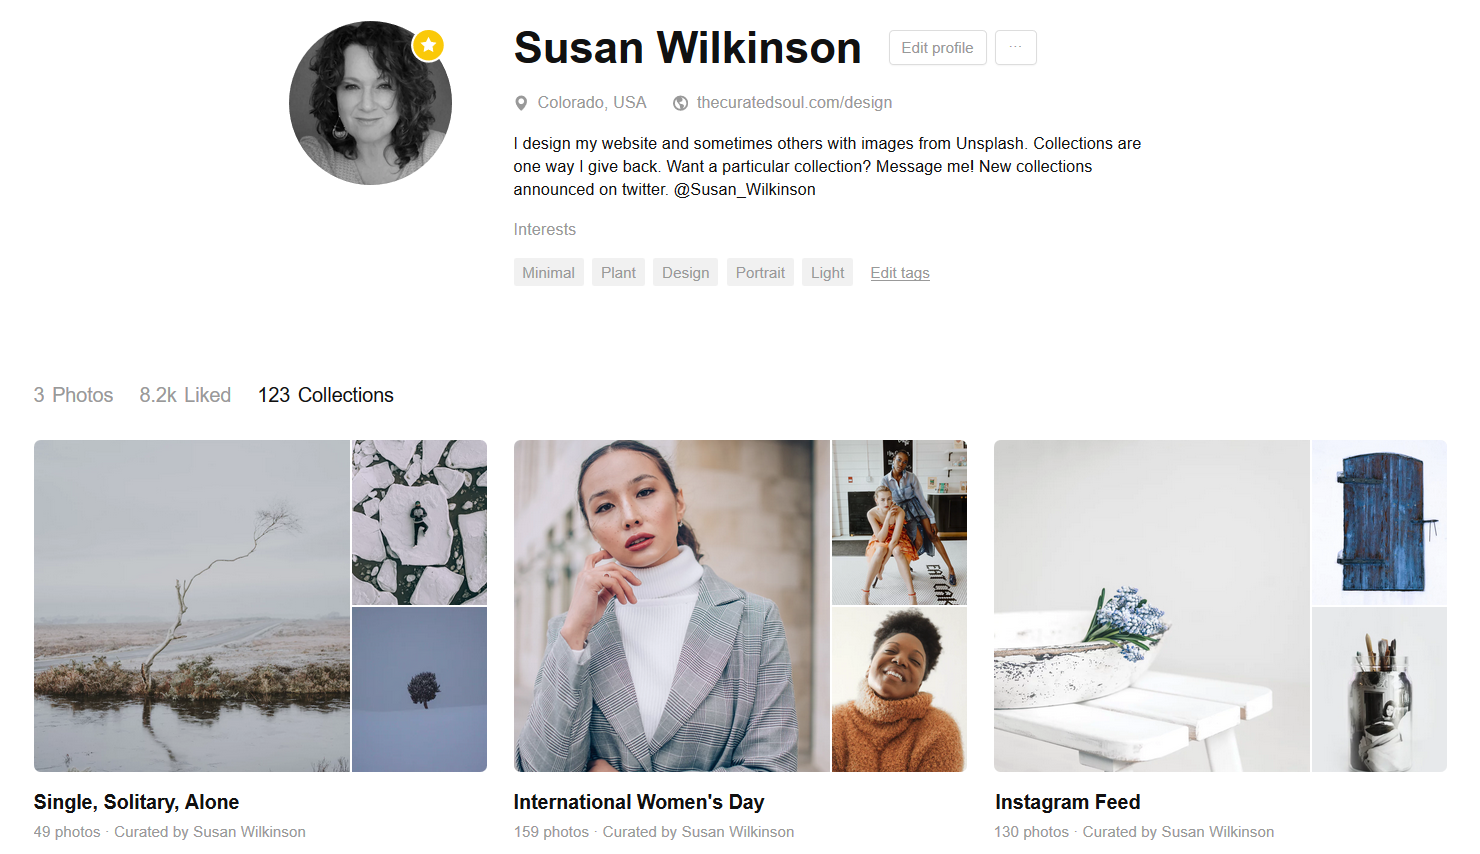 Unsplash_Design_The_Curated_Soul_Susan_Wilkinson.png